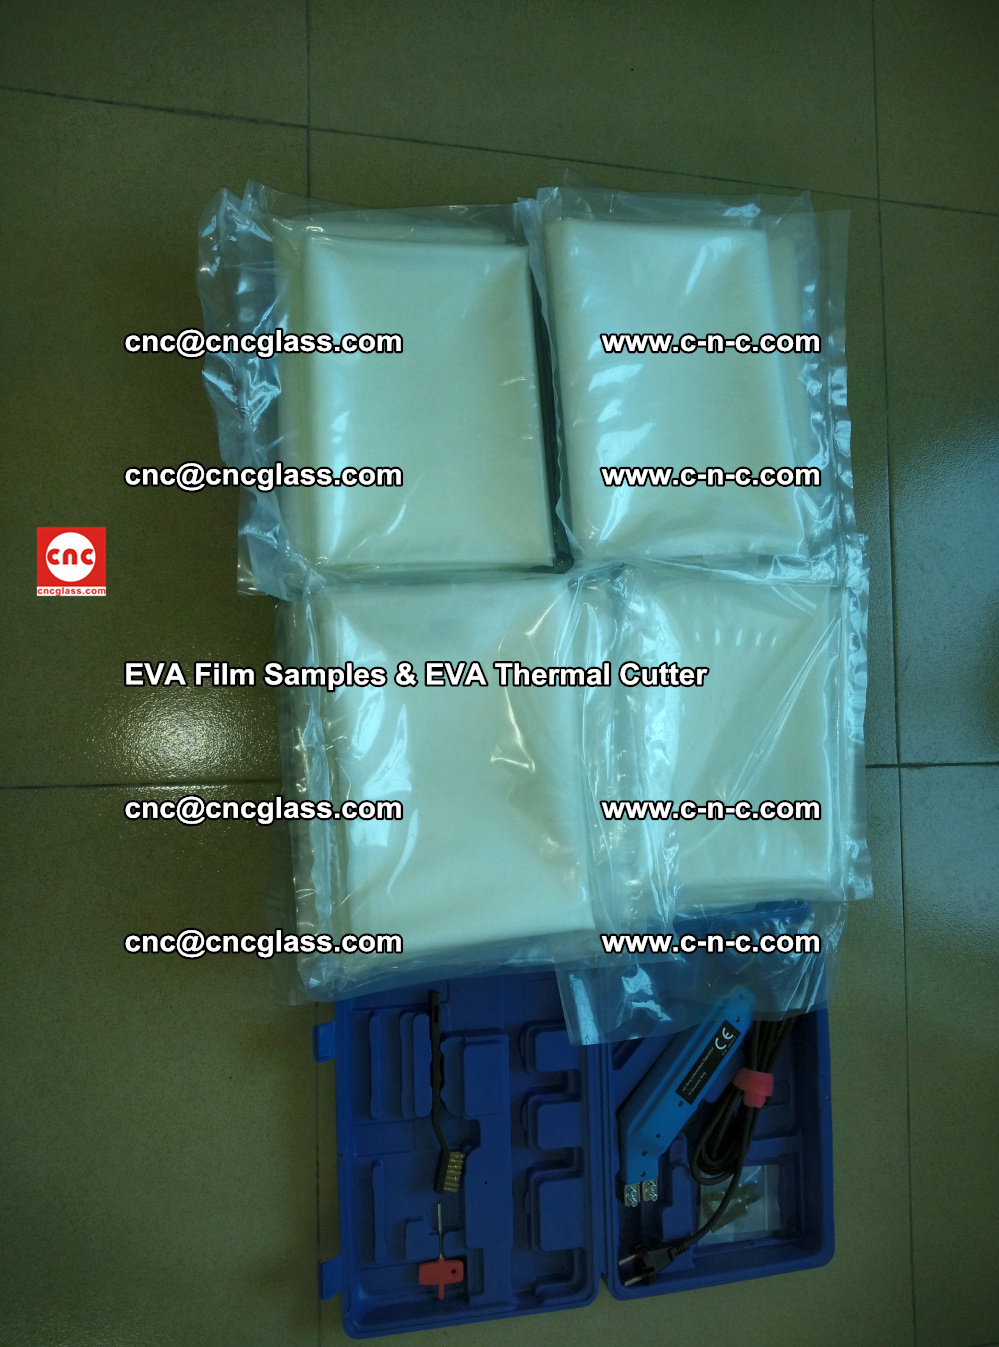 EVAFORCE SUPER CLEAR EVA Film Samples and EVA Thermal Cutter (39)